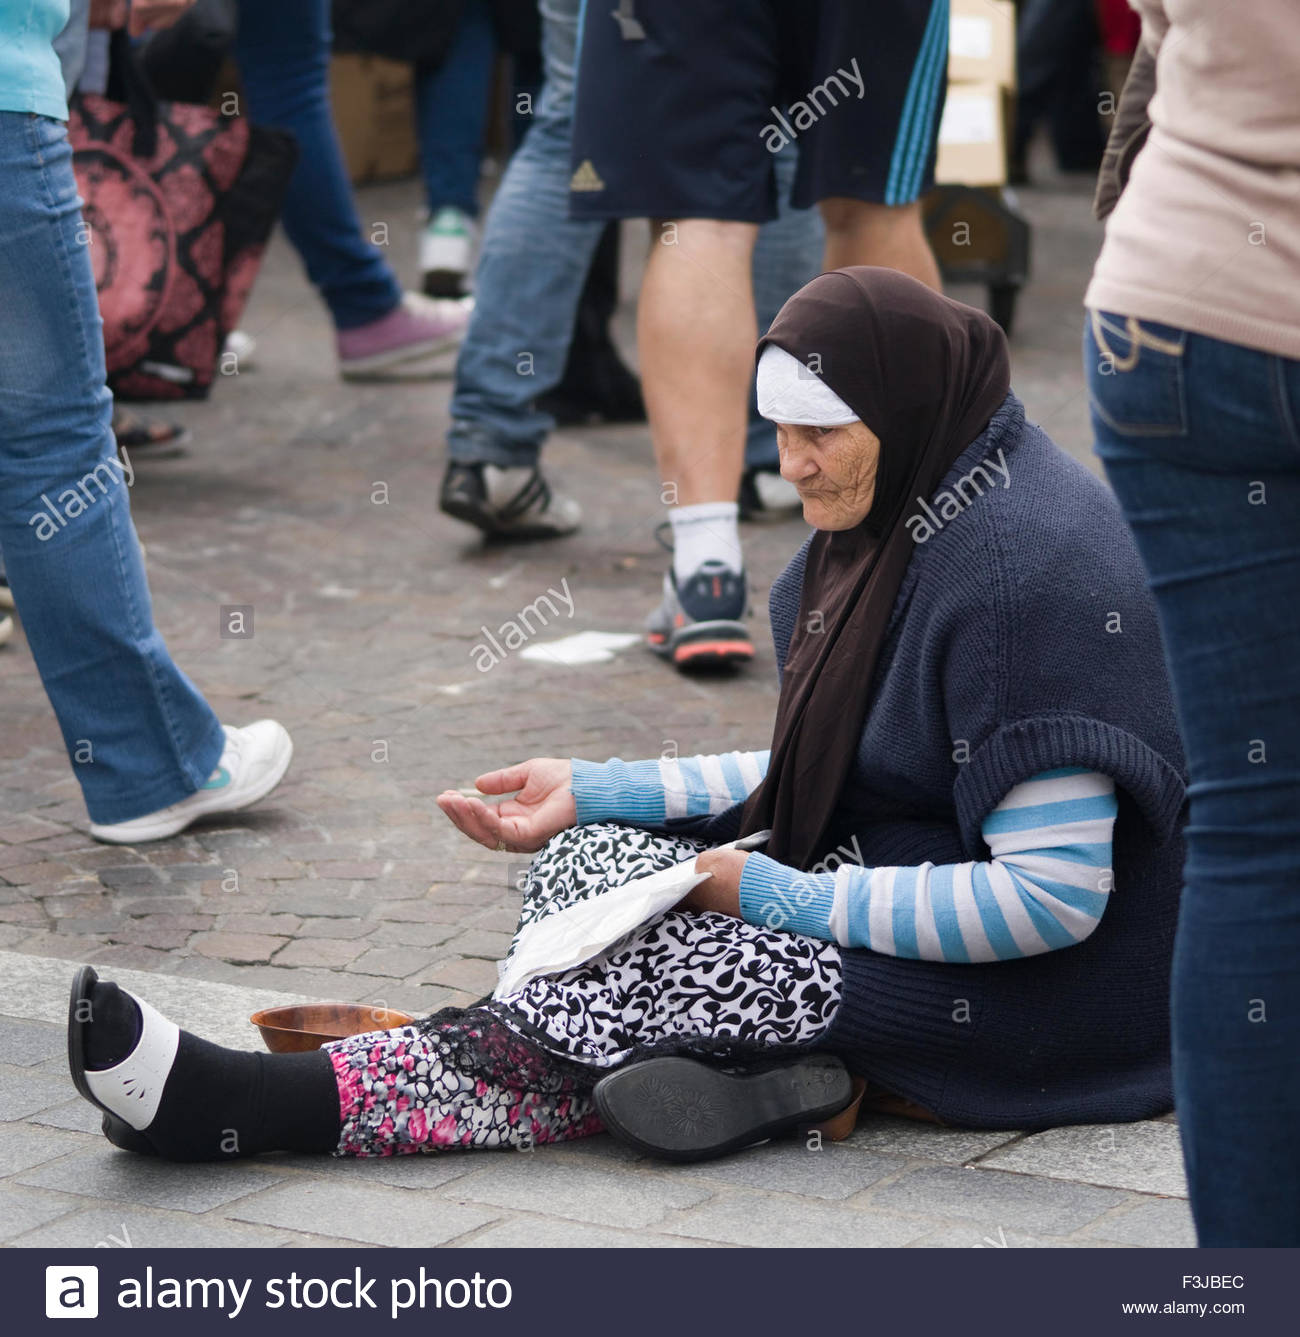 France, Lille, Muslims In Europe - Stock Image